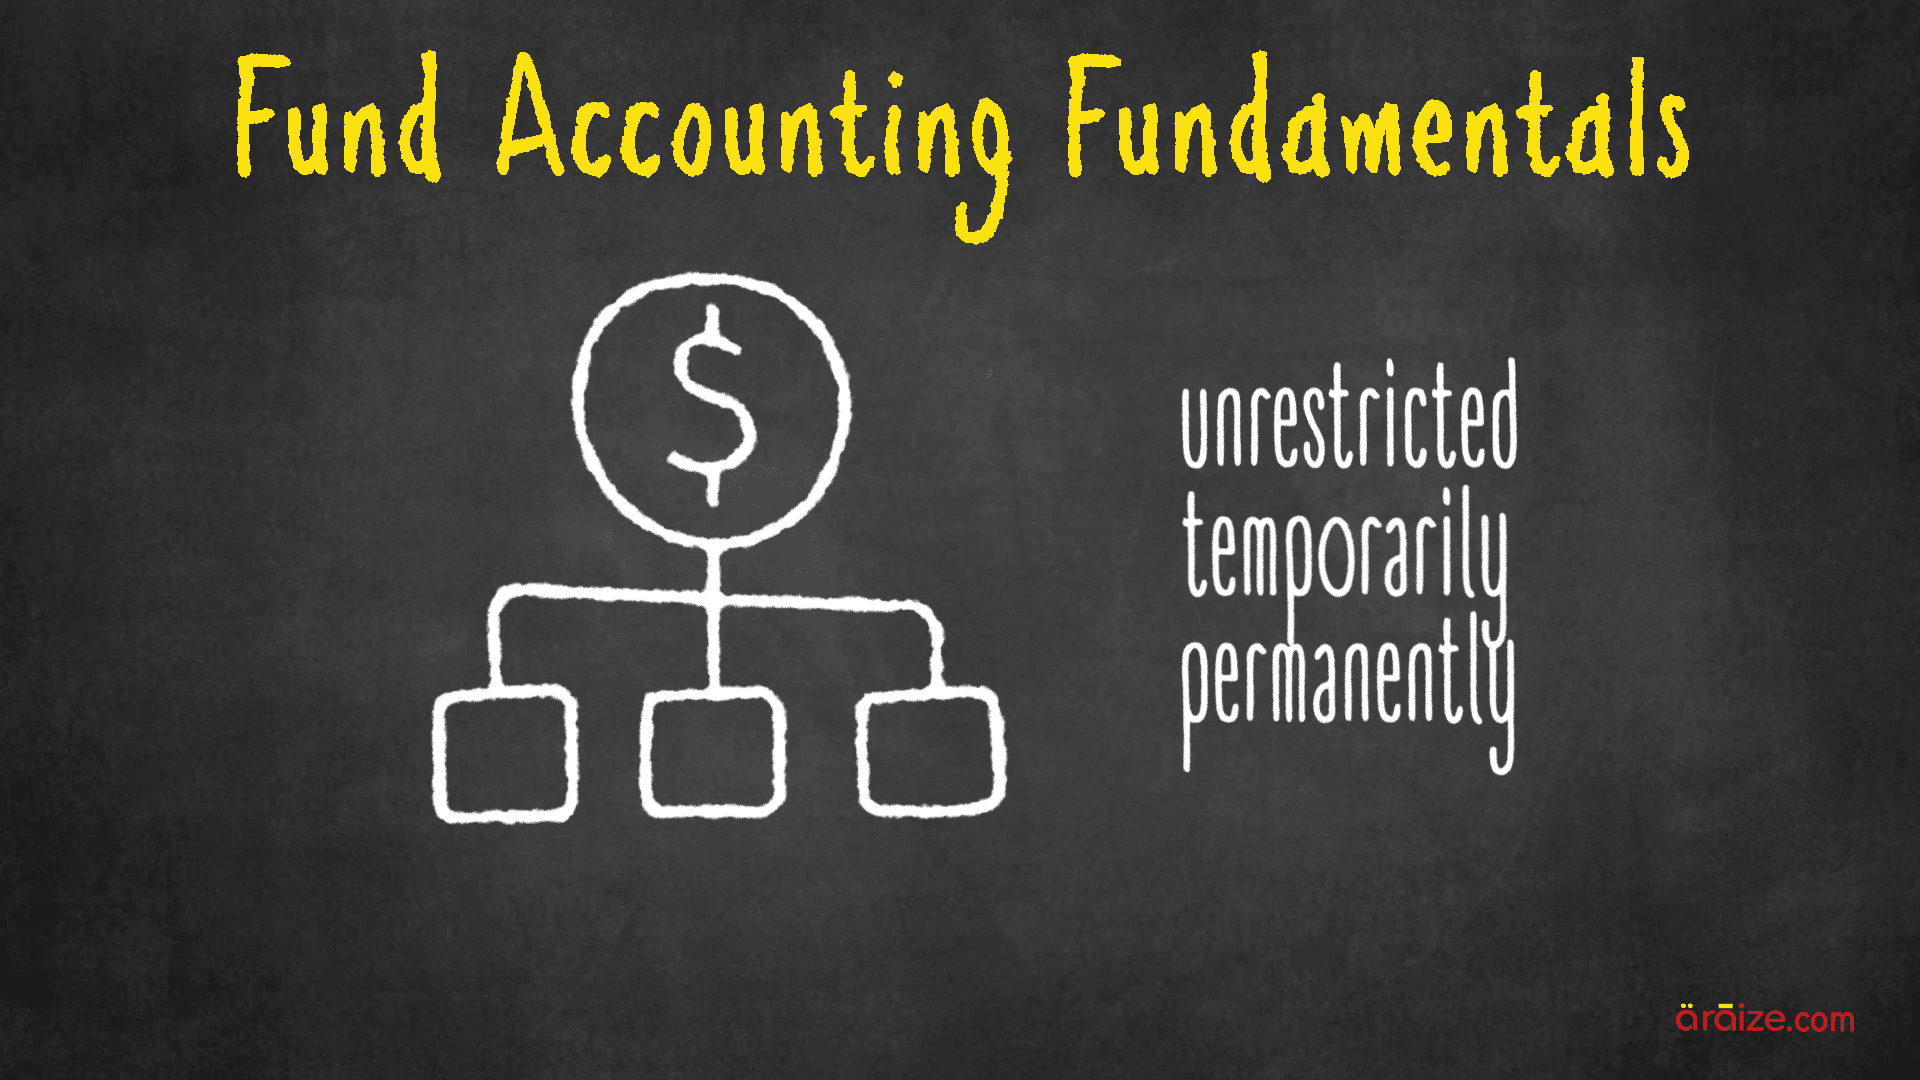 Common Nonprofit Fund Accounting Mistakes To Avoid